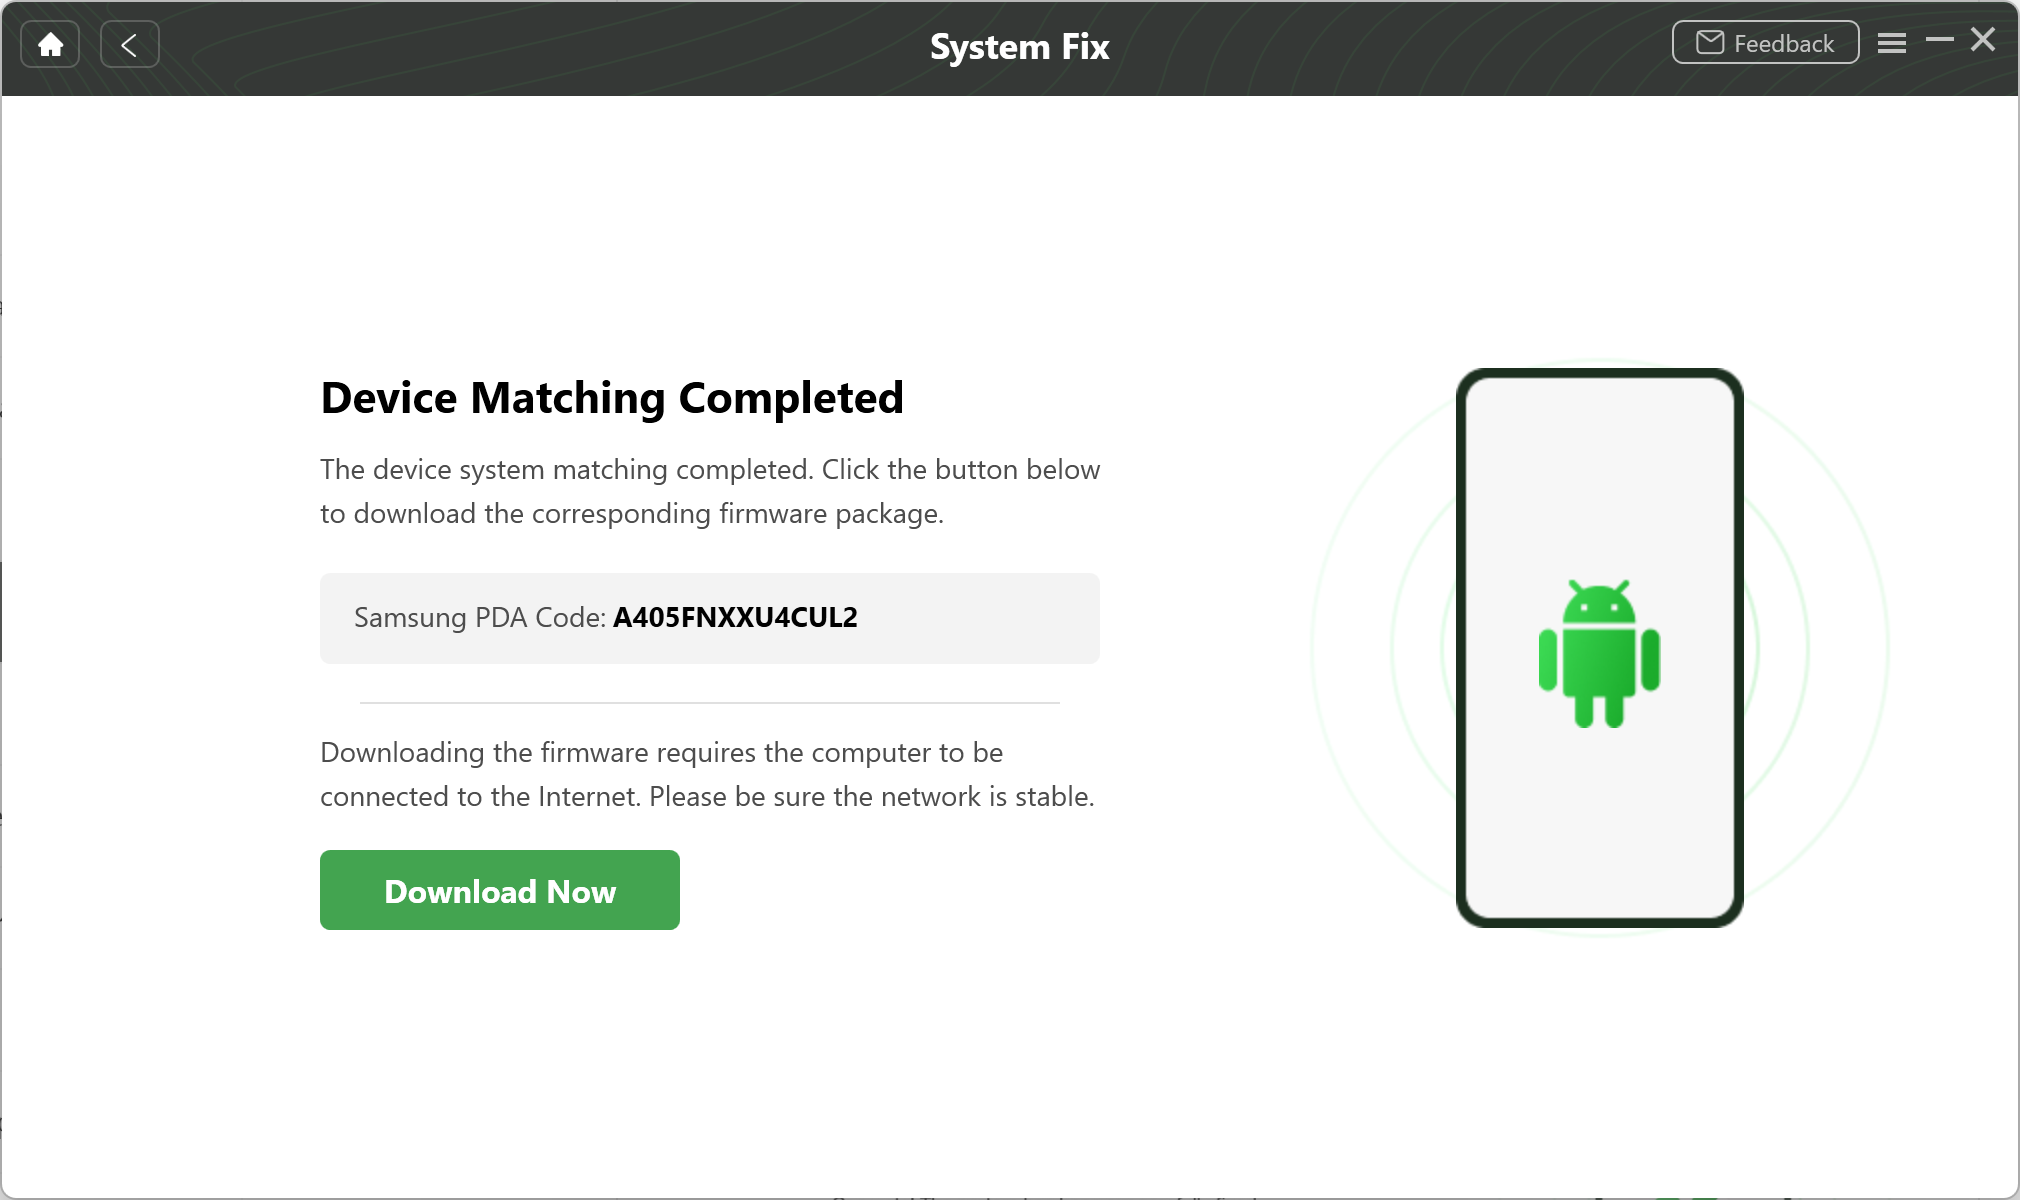 Device Matching Completed